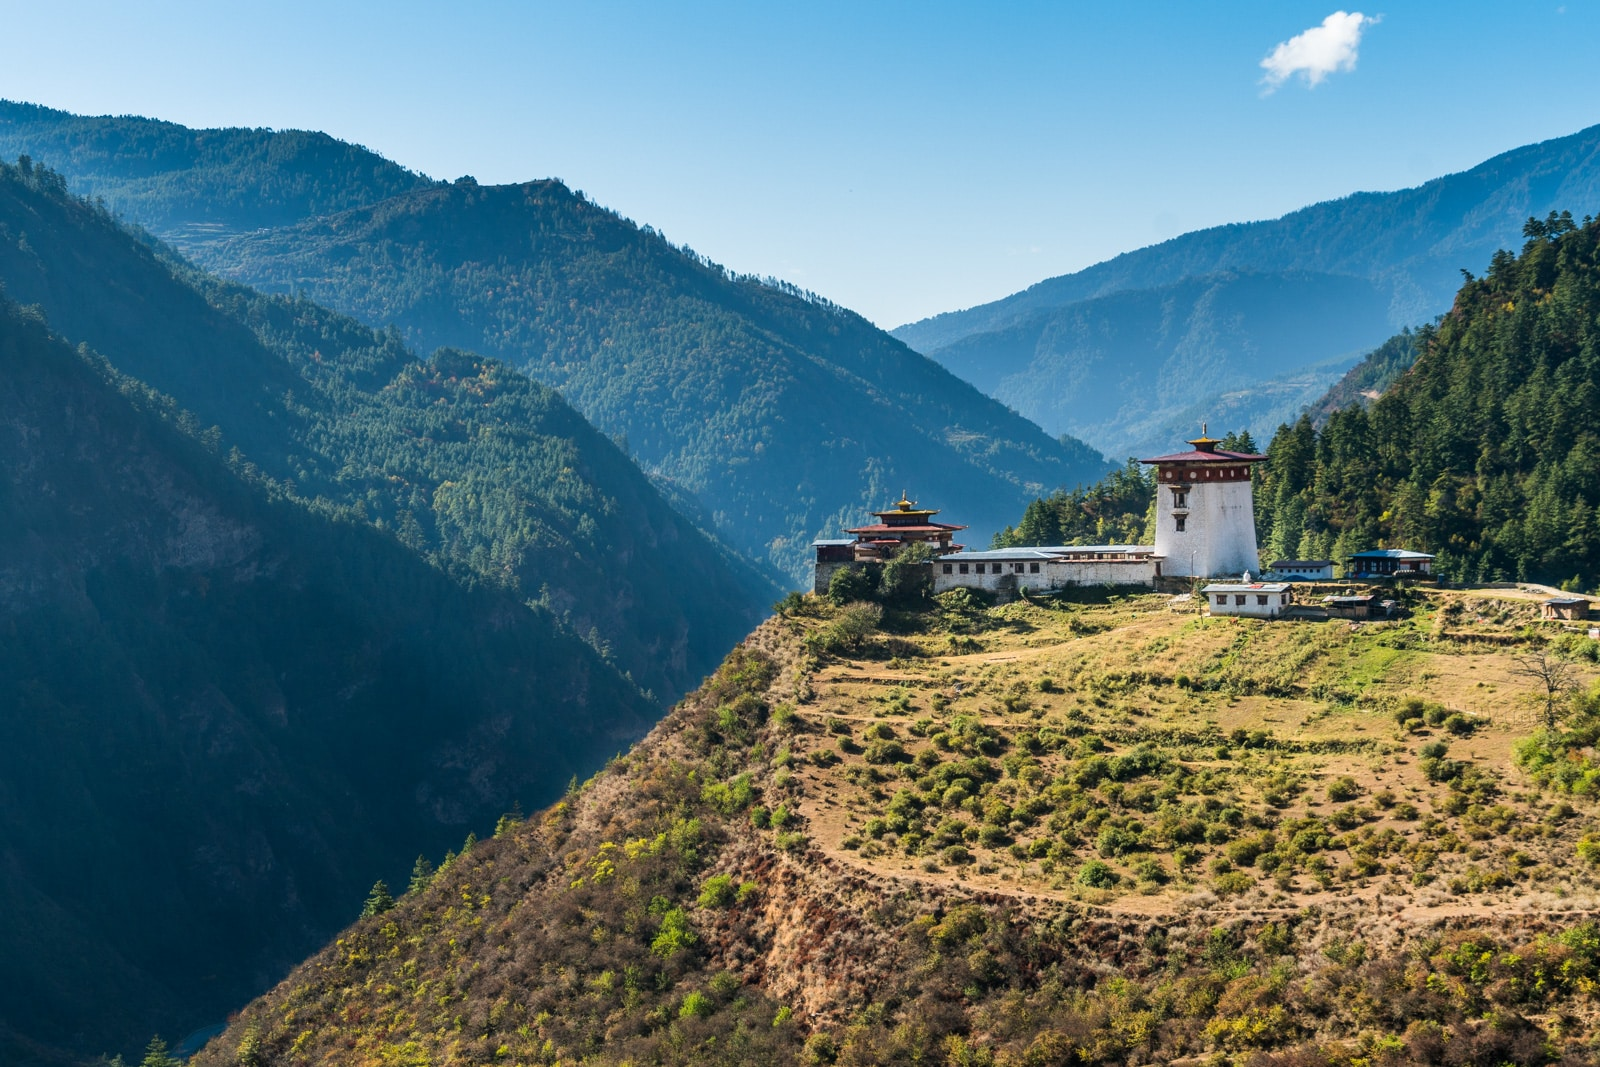 Photos of Bhutan - Dzong on a hill on the way to Haa Valley - Lost With Purpose travel blog